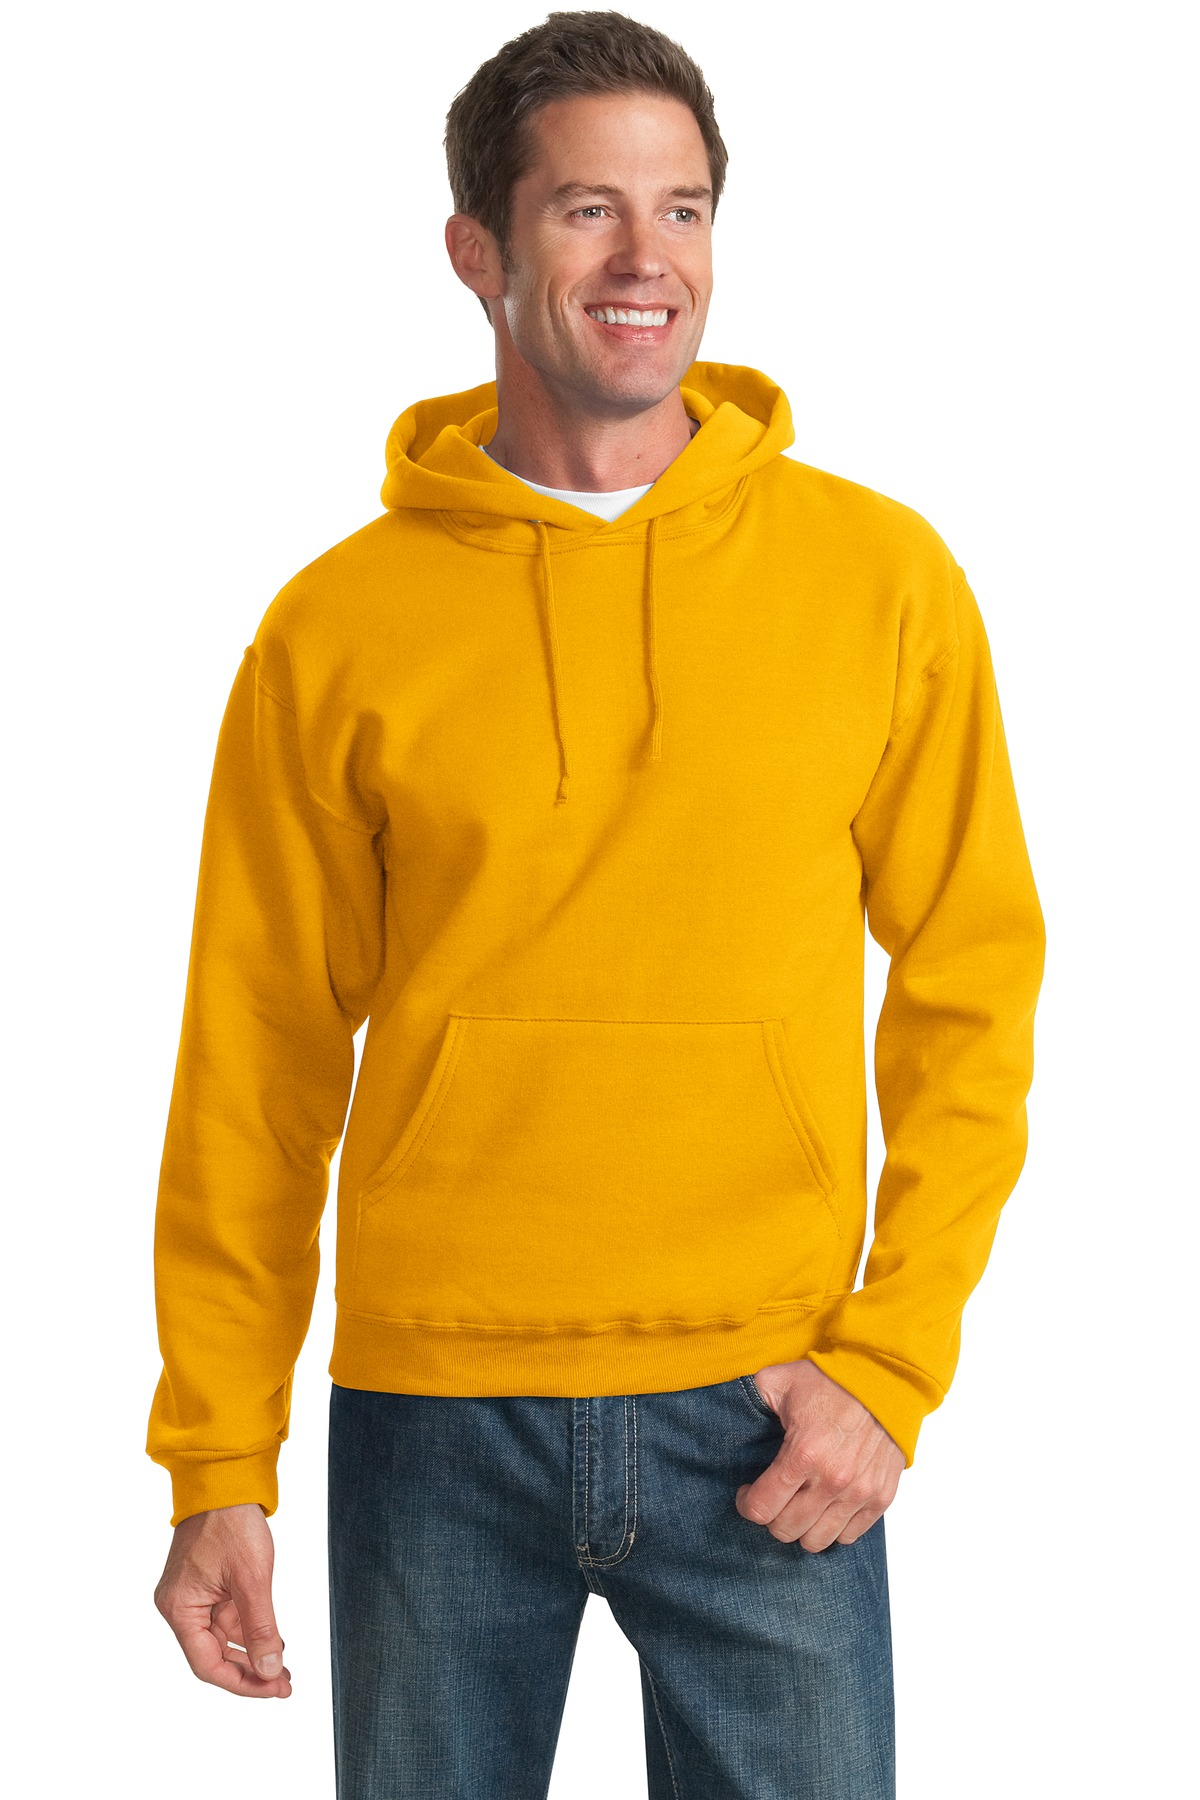 JERZEES ®  - NuBlend ®  Pullover Hooded Sweatshirt.  996M - Gold